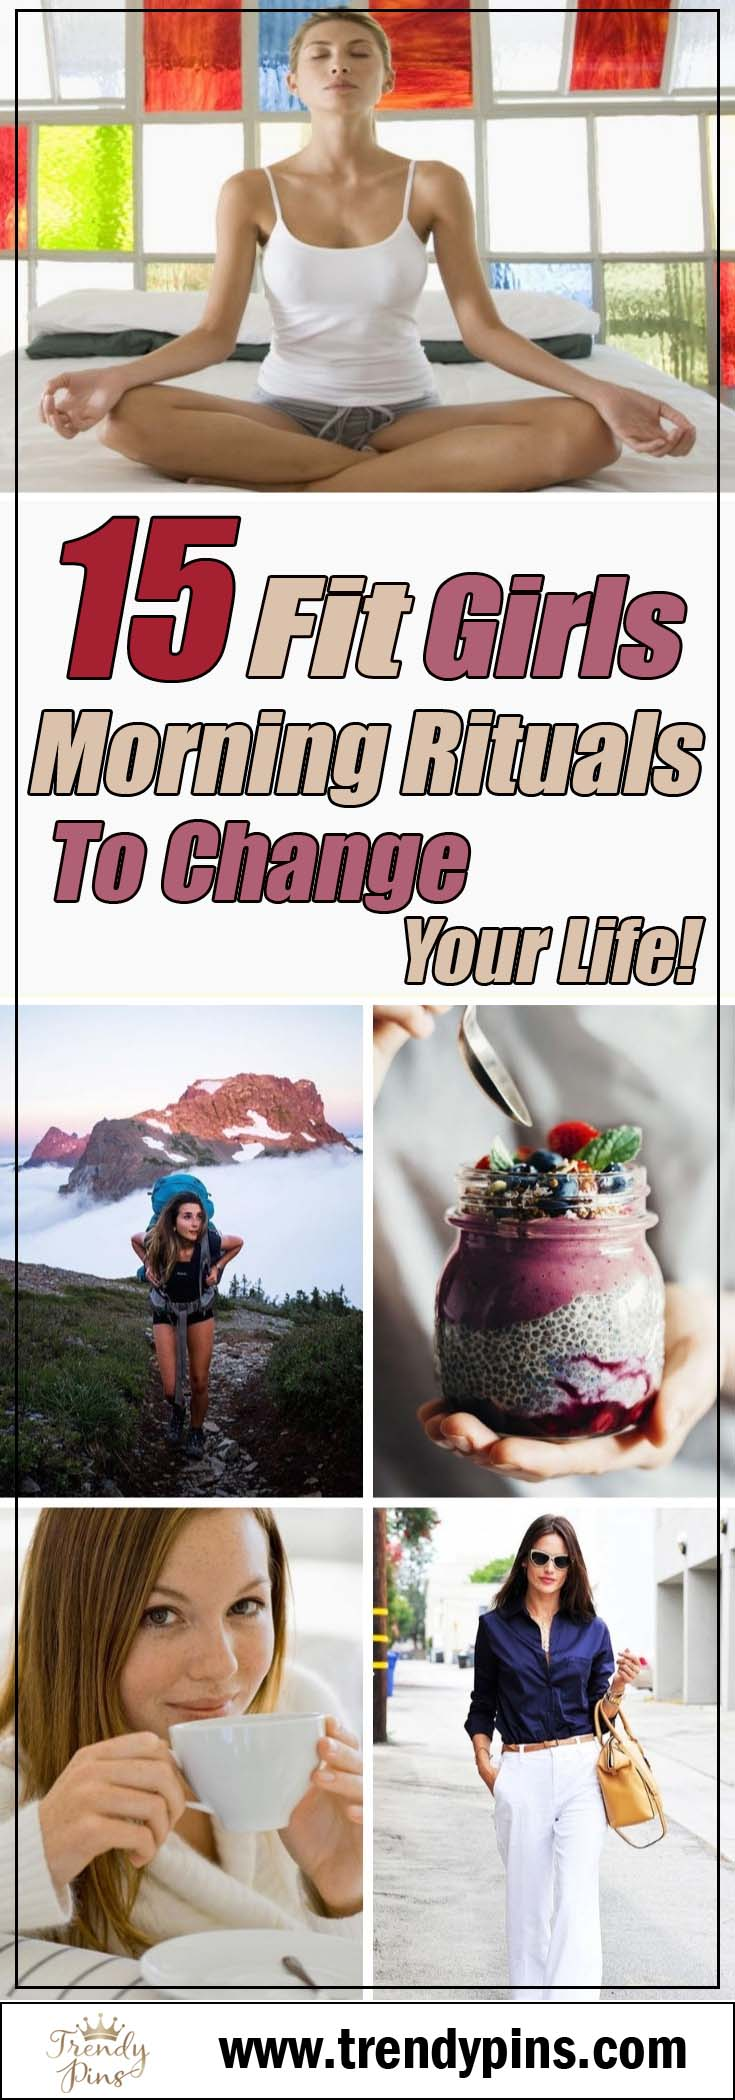 15 fit girls morning rituals to change your life!